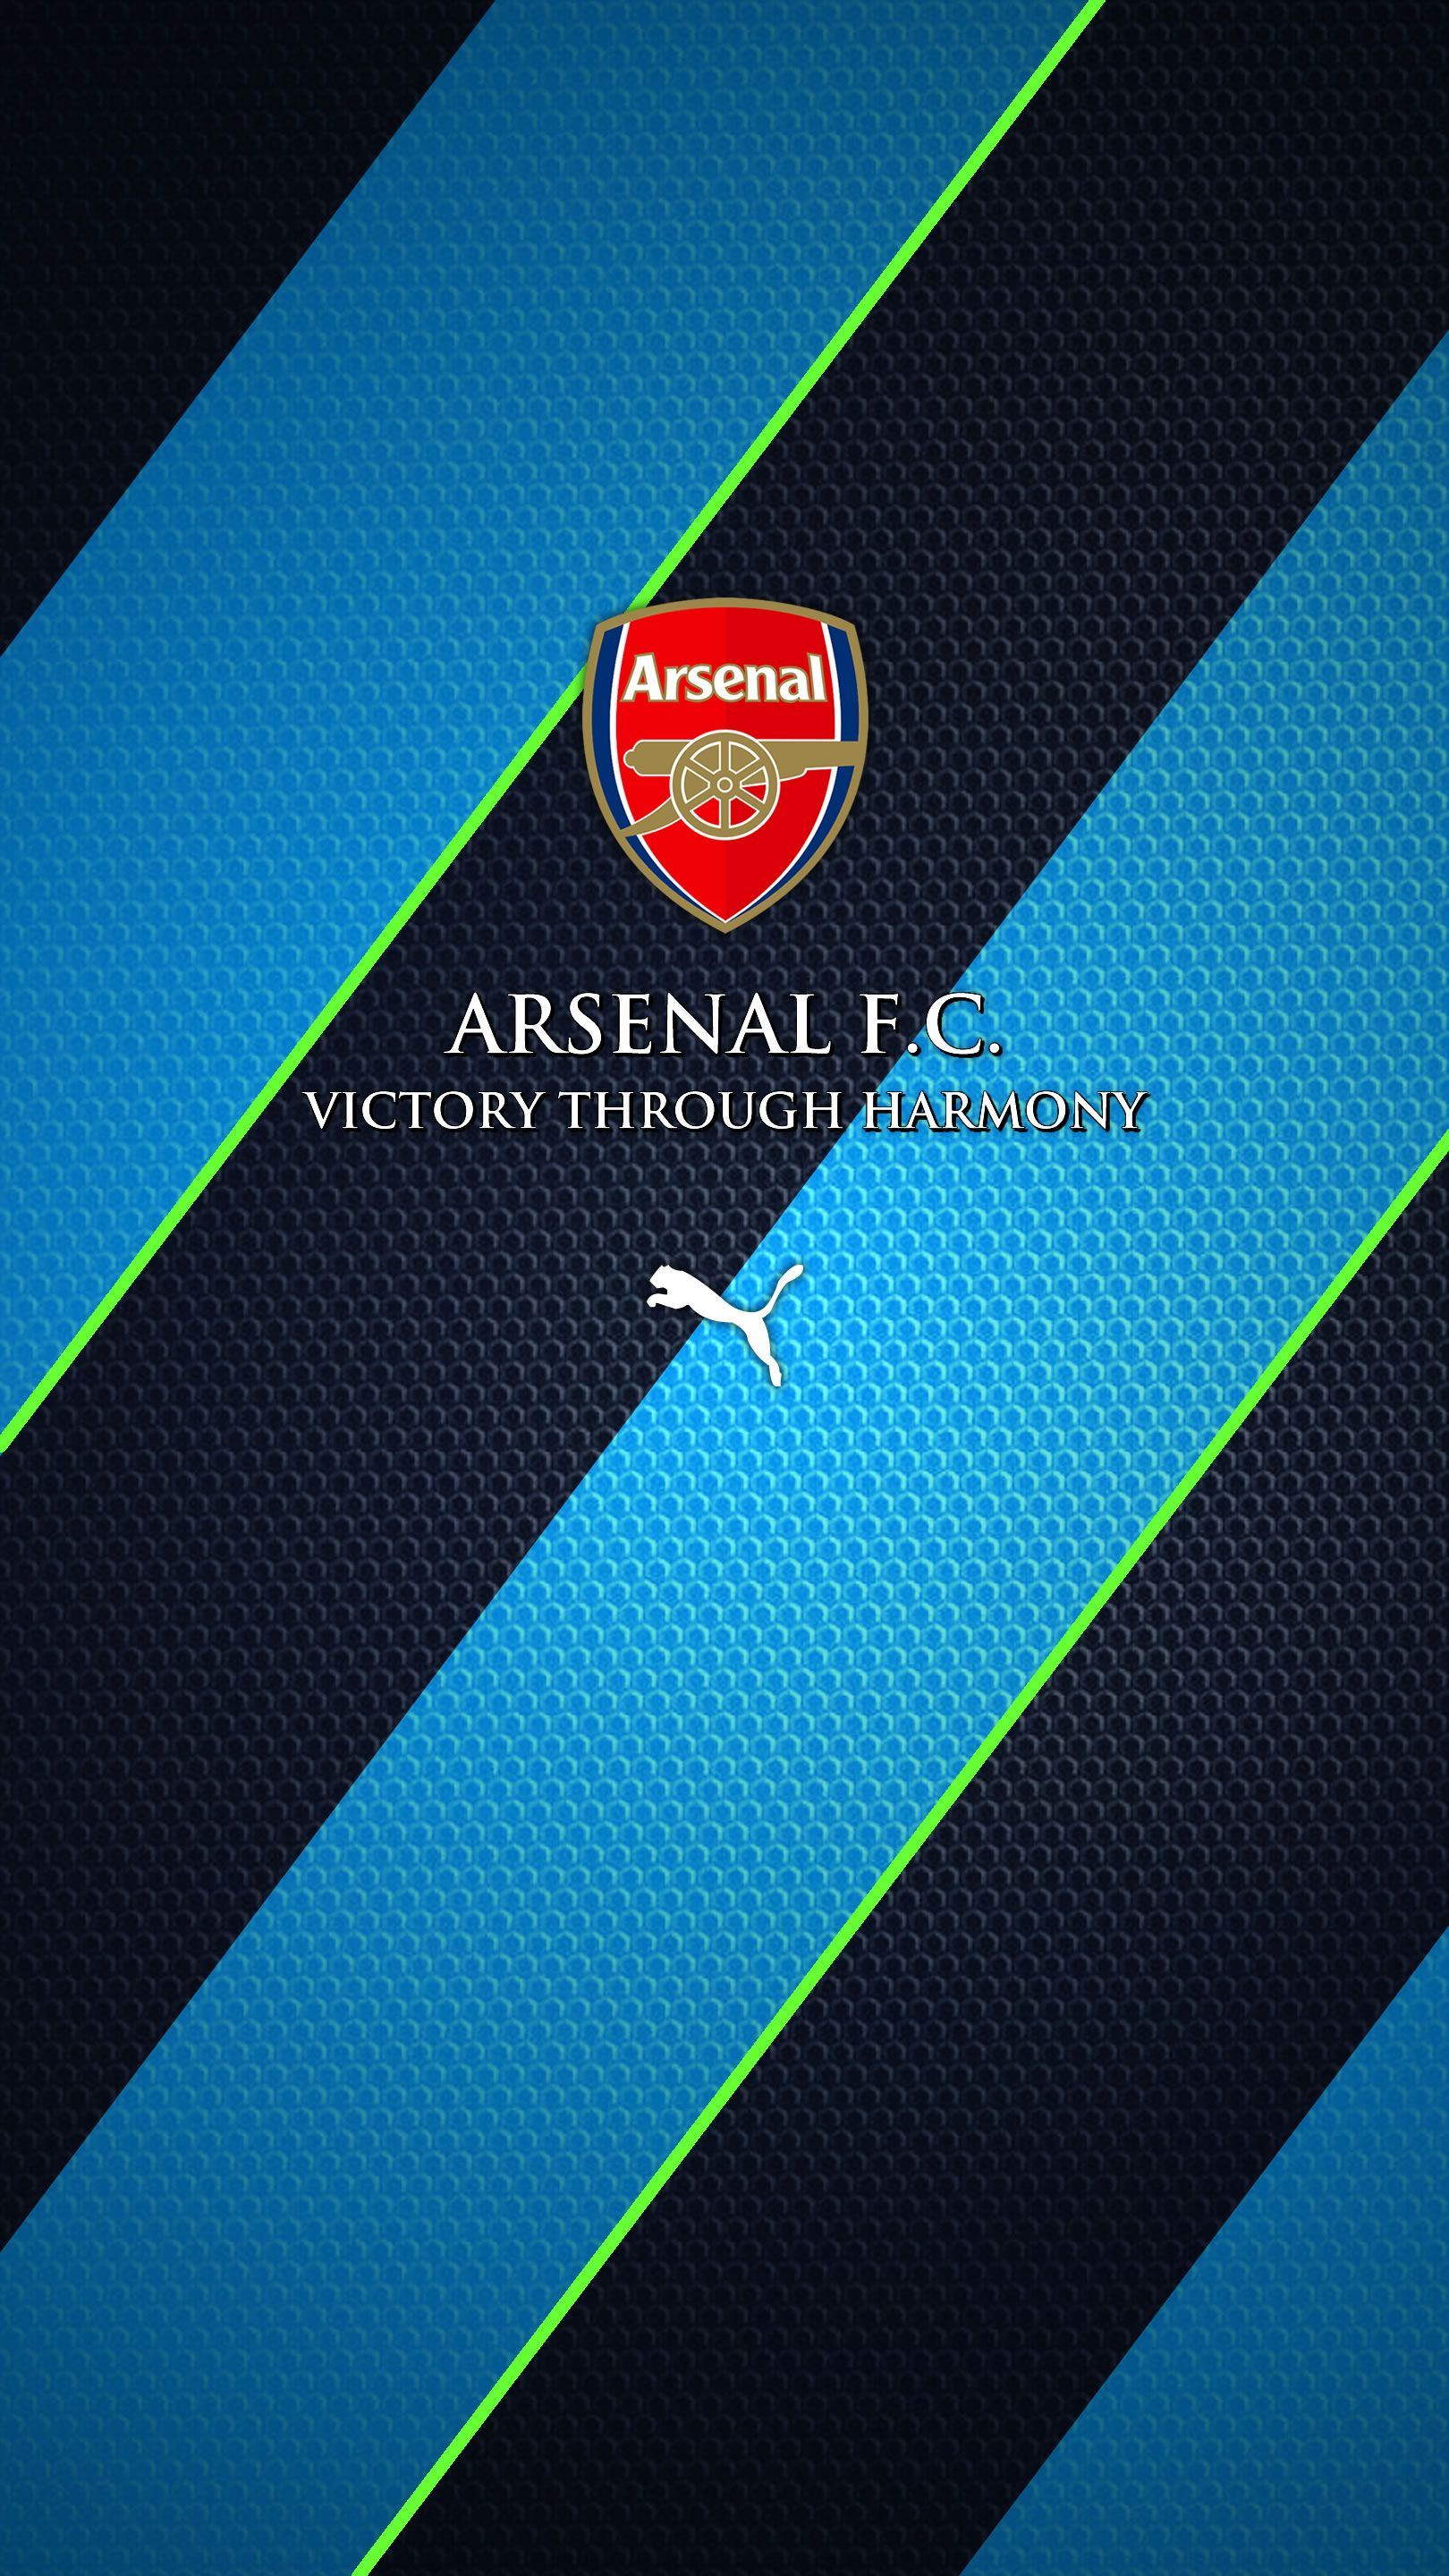 Pin on Wallpaper from Arsenal's Kit